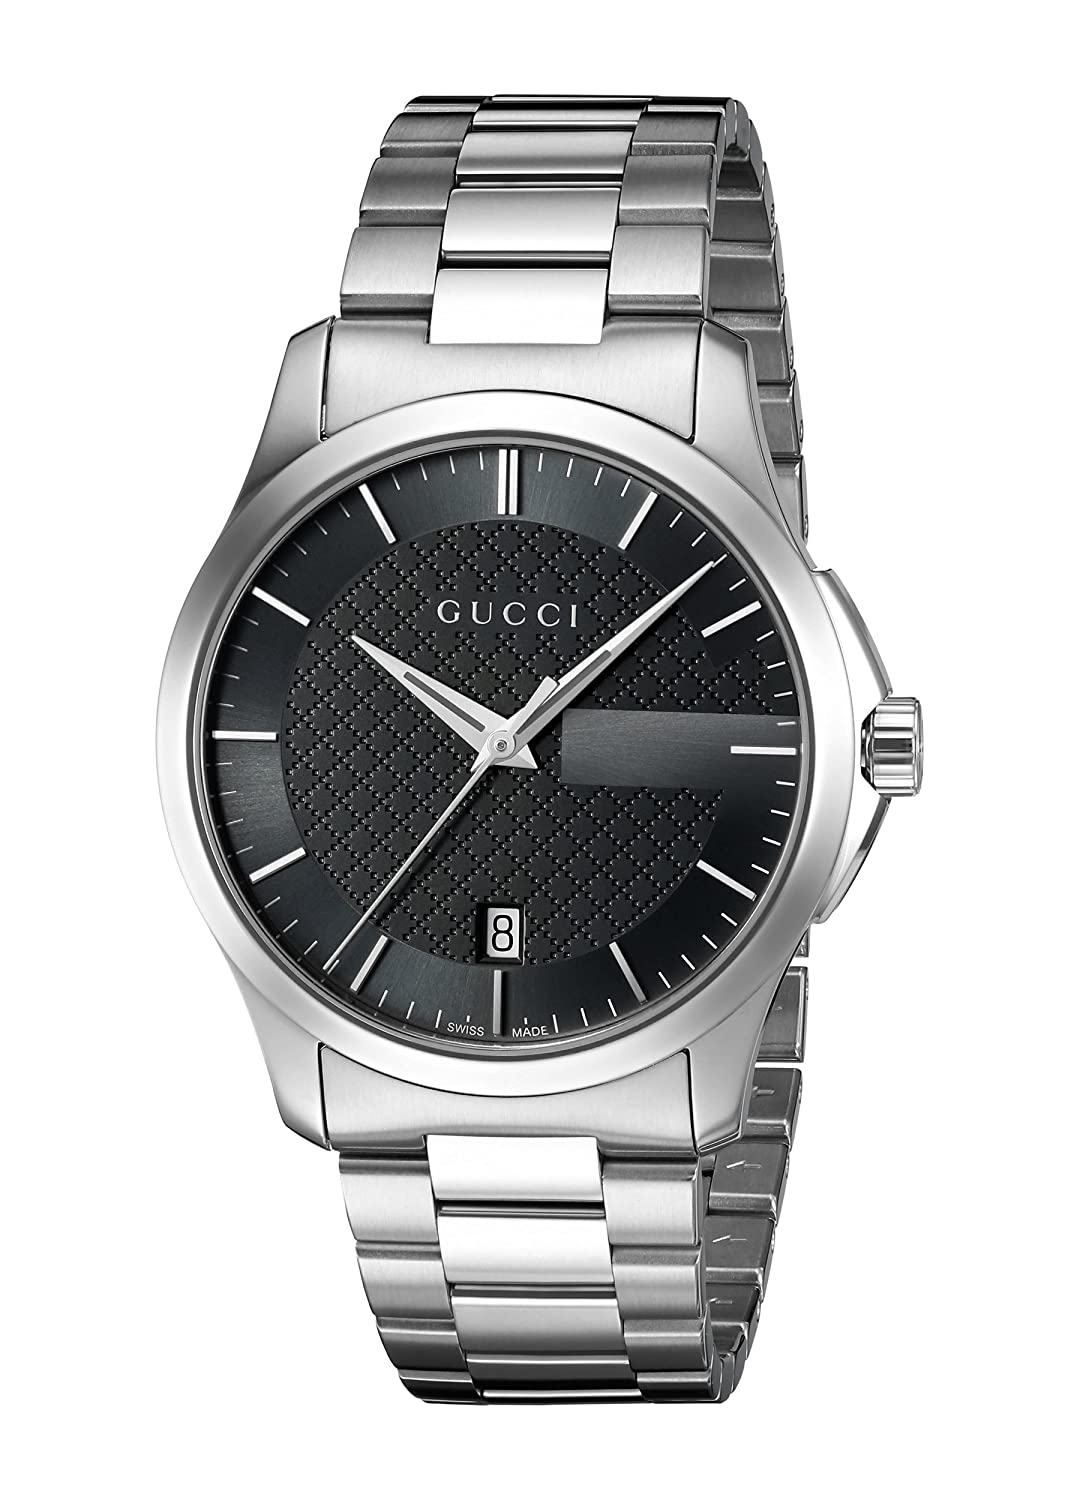 a1e1abb4eac Gucci G-timeless Stainless Steel Watch YA126457 for sale online